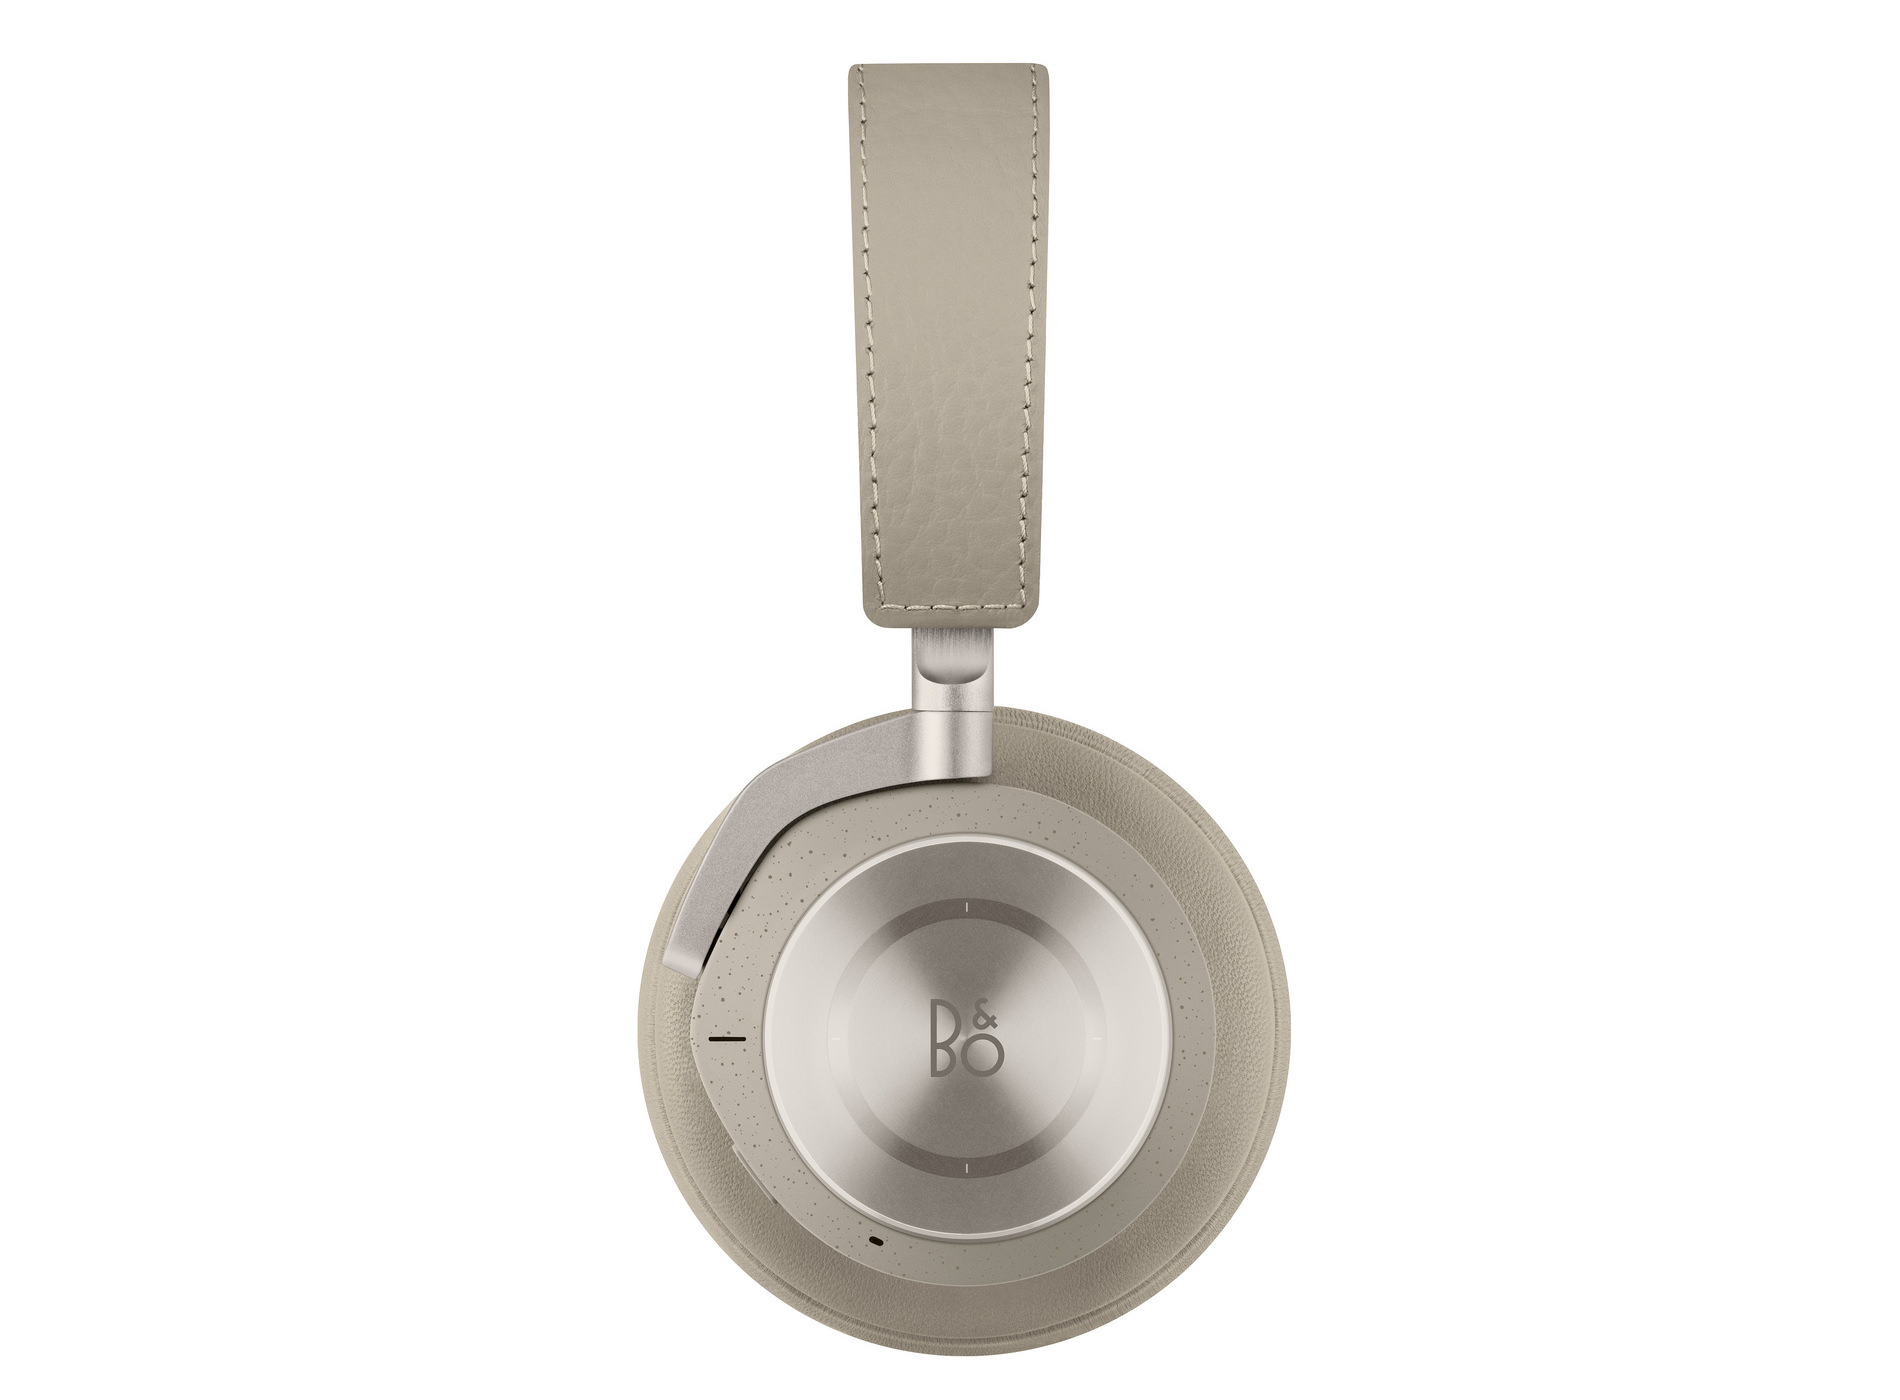 Lifestyle Bang & Olufsen Casque Haut Parleur Audio Collection SS19 Clay